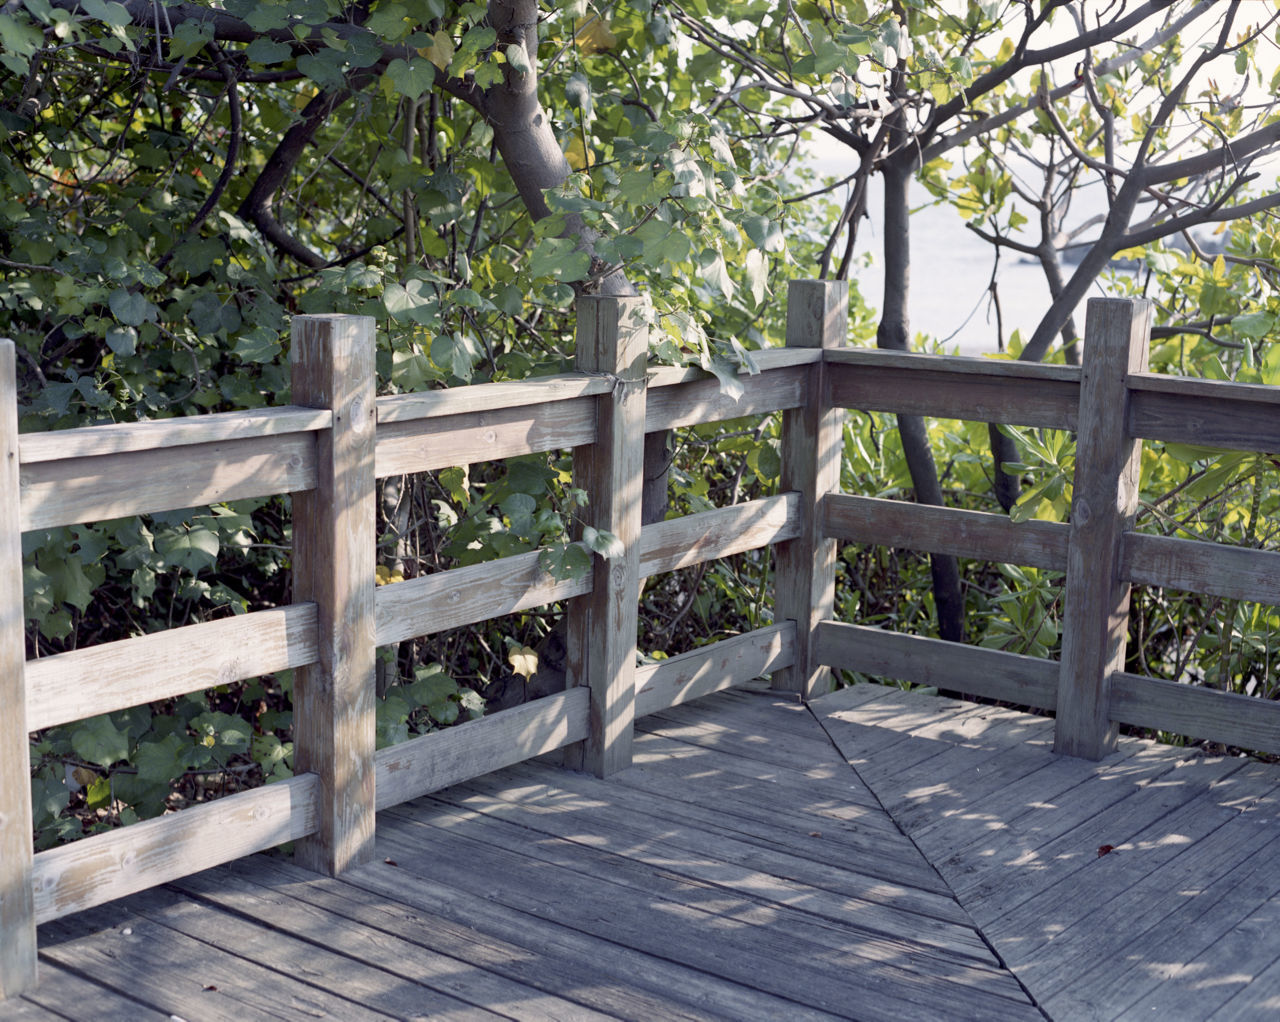 Day Nature No People Outdoors Railing Sunlight Tranquility Tree Wood - Material